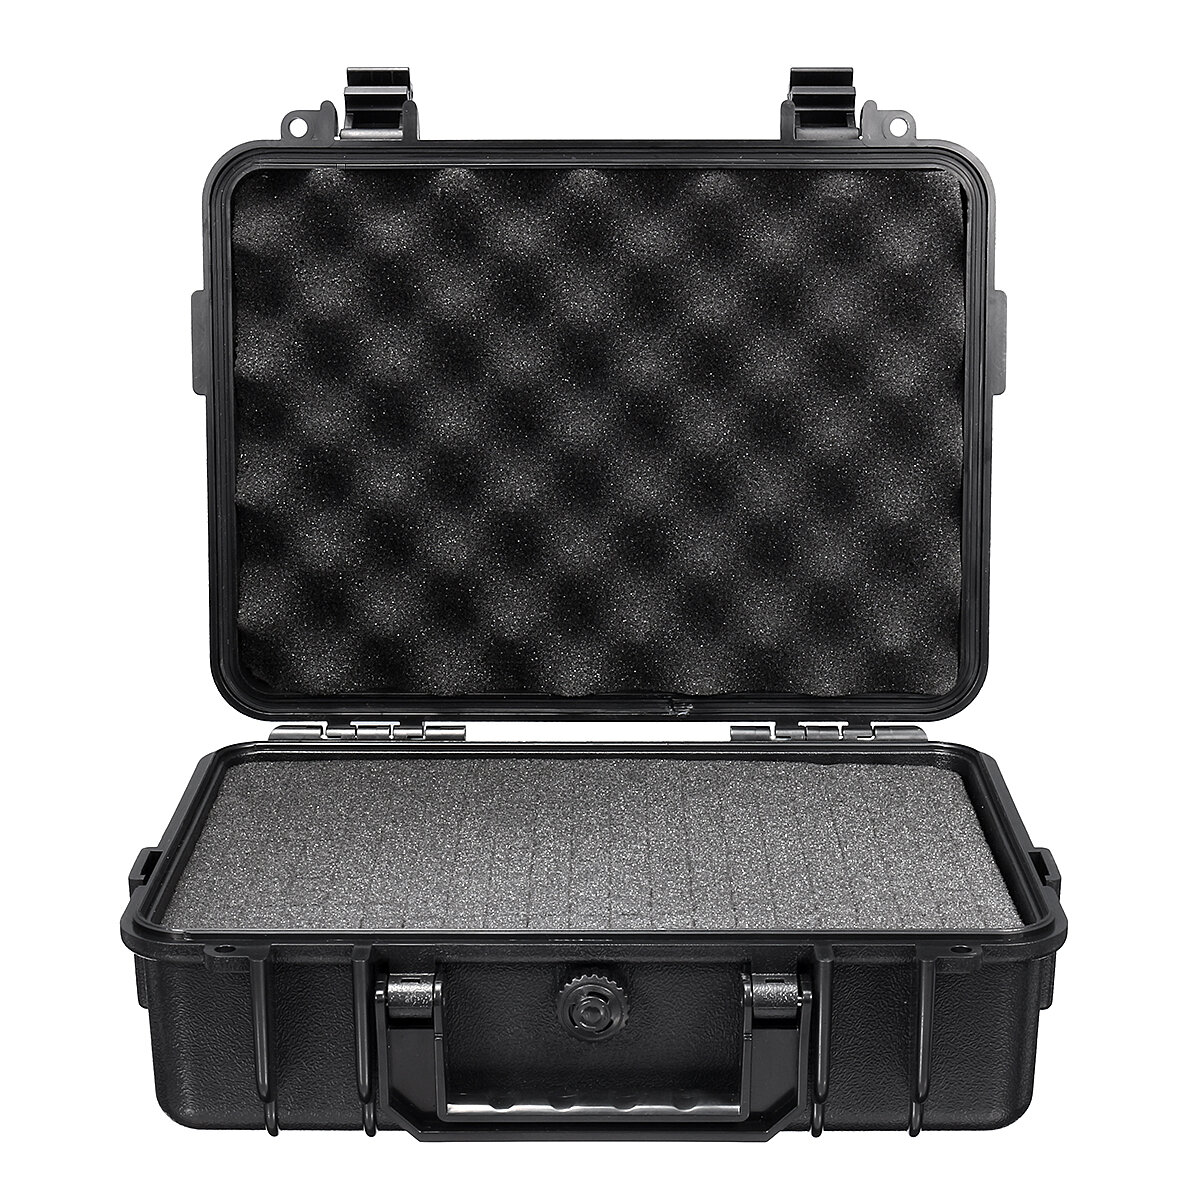 Waterproof Hard Carry Tool Case Bag Storage Box Camera Photography with Sponge 180*120*50mm